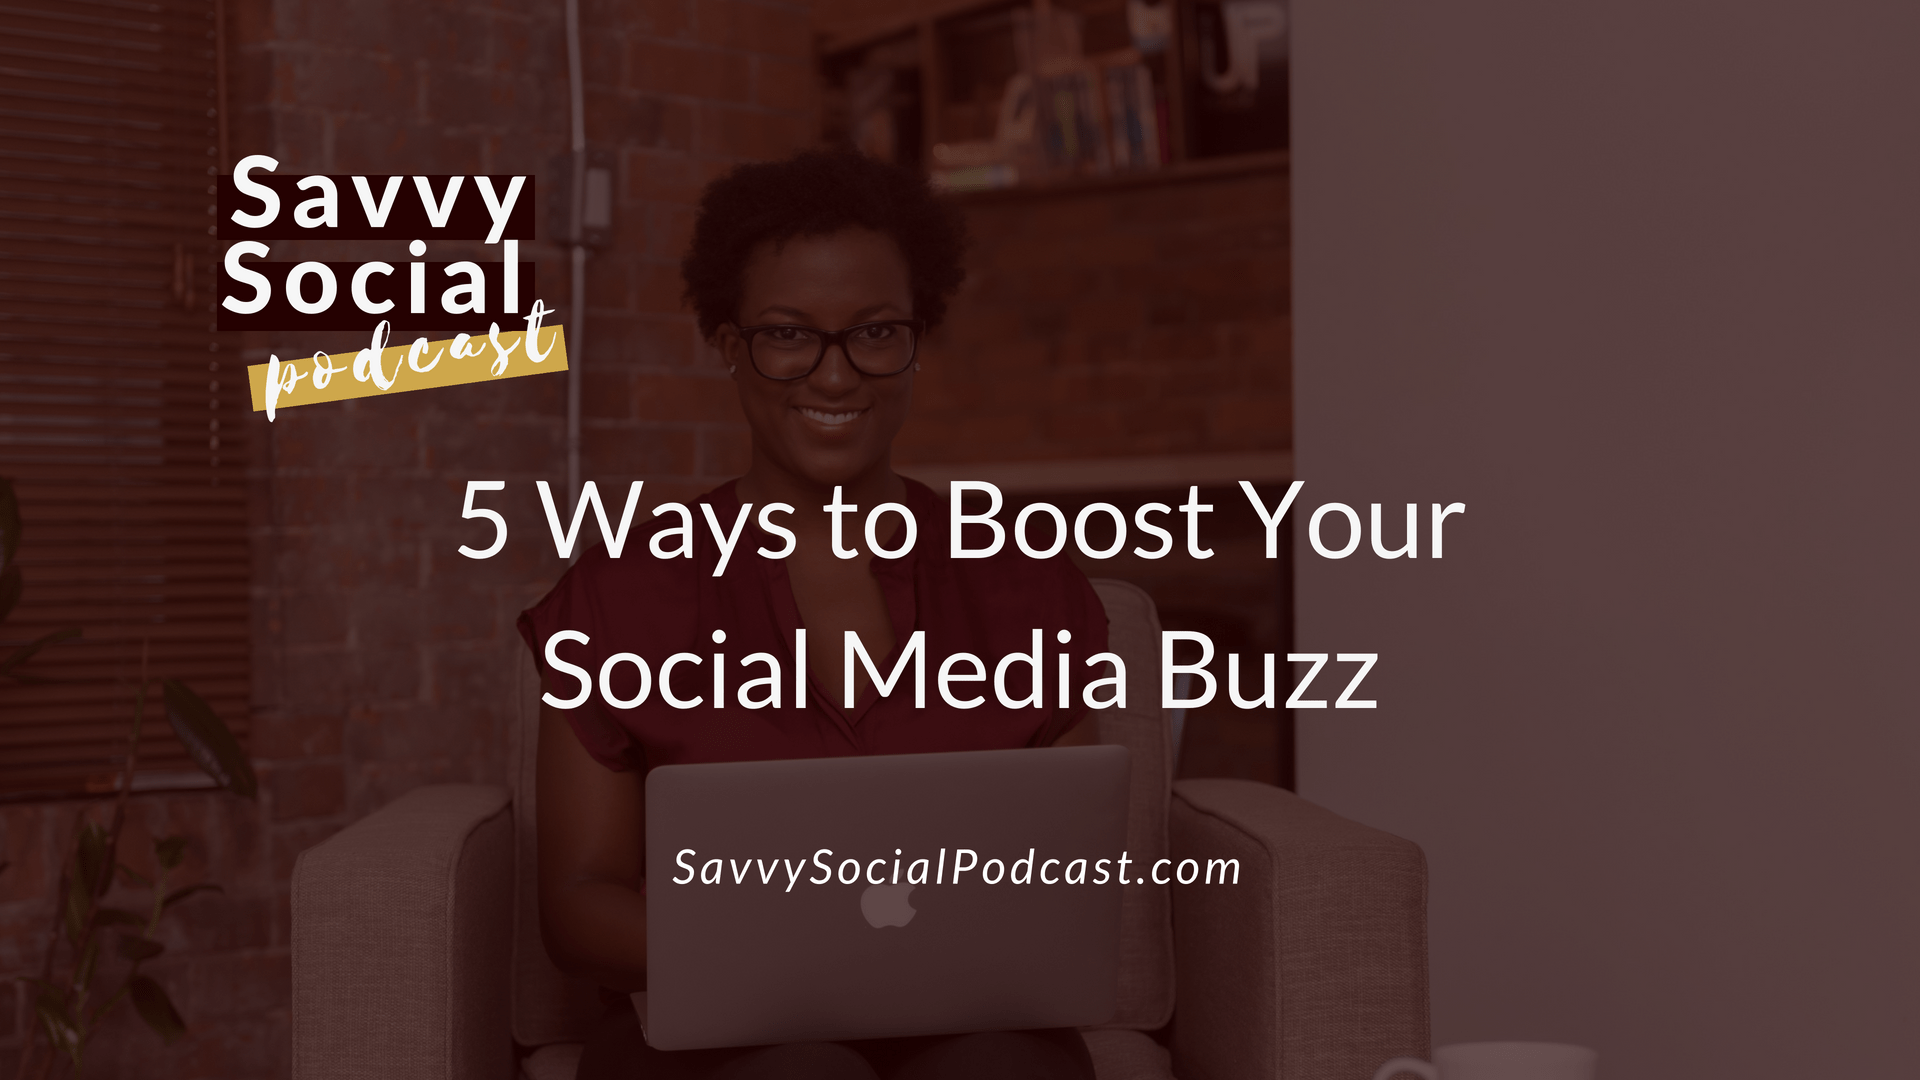 5 Ways to Boost Your Social Media Buzz